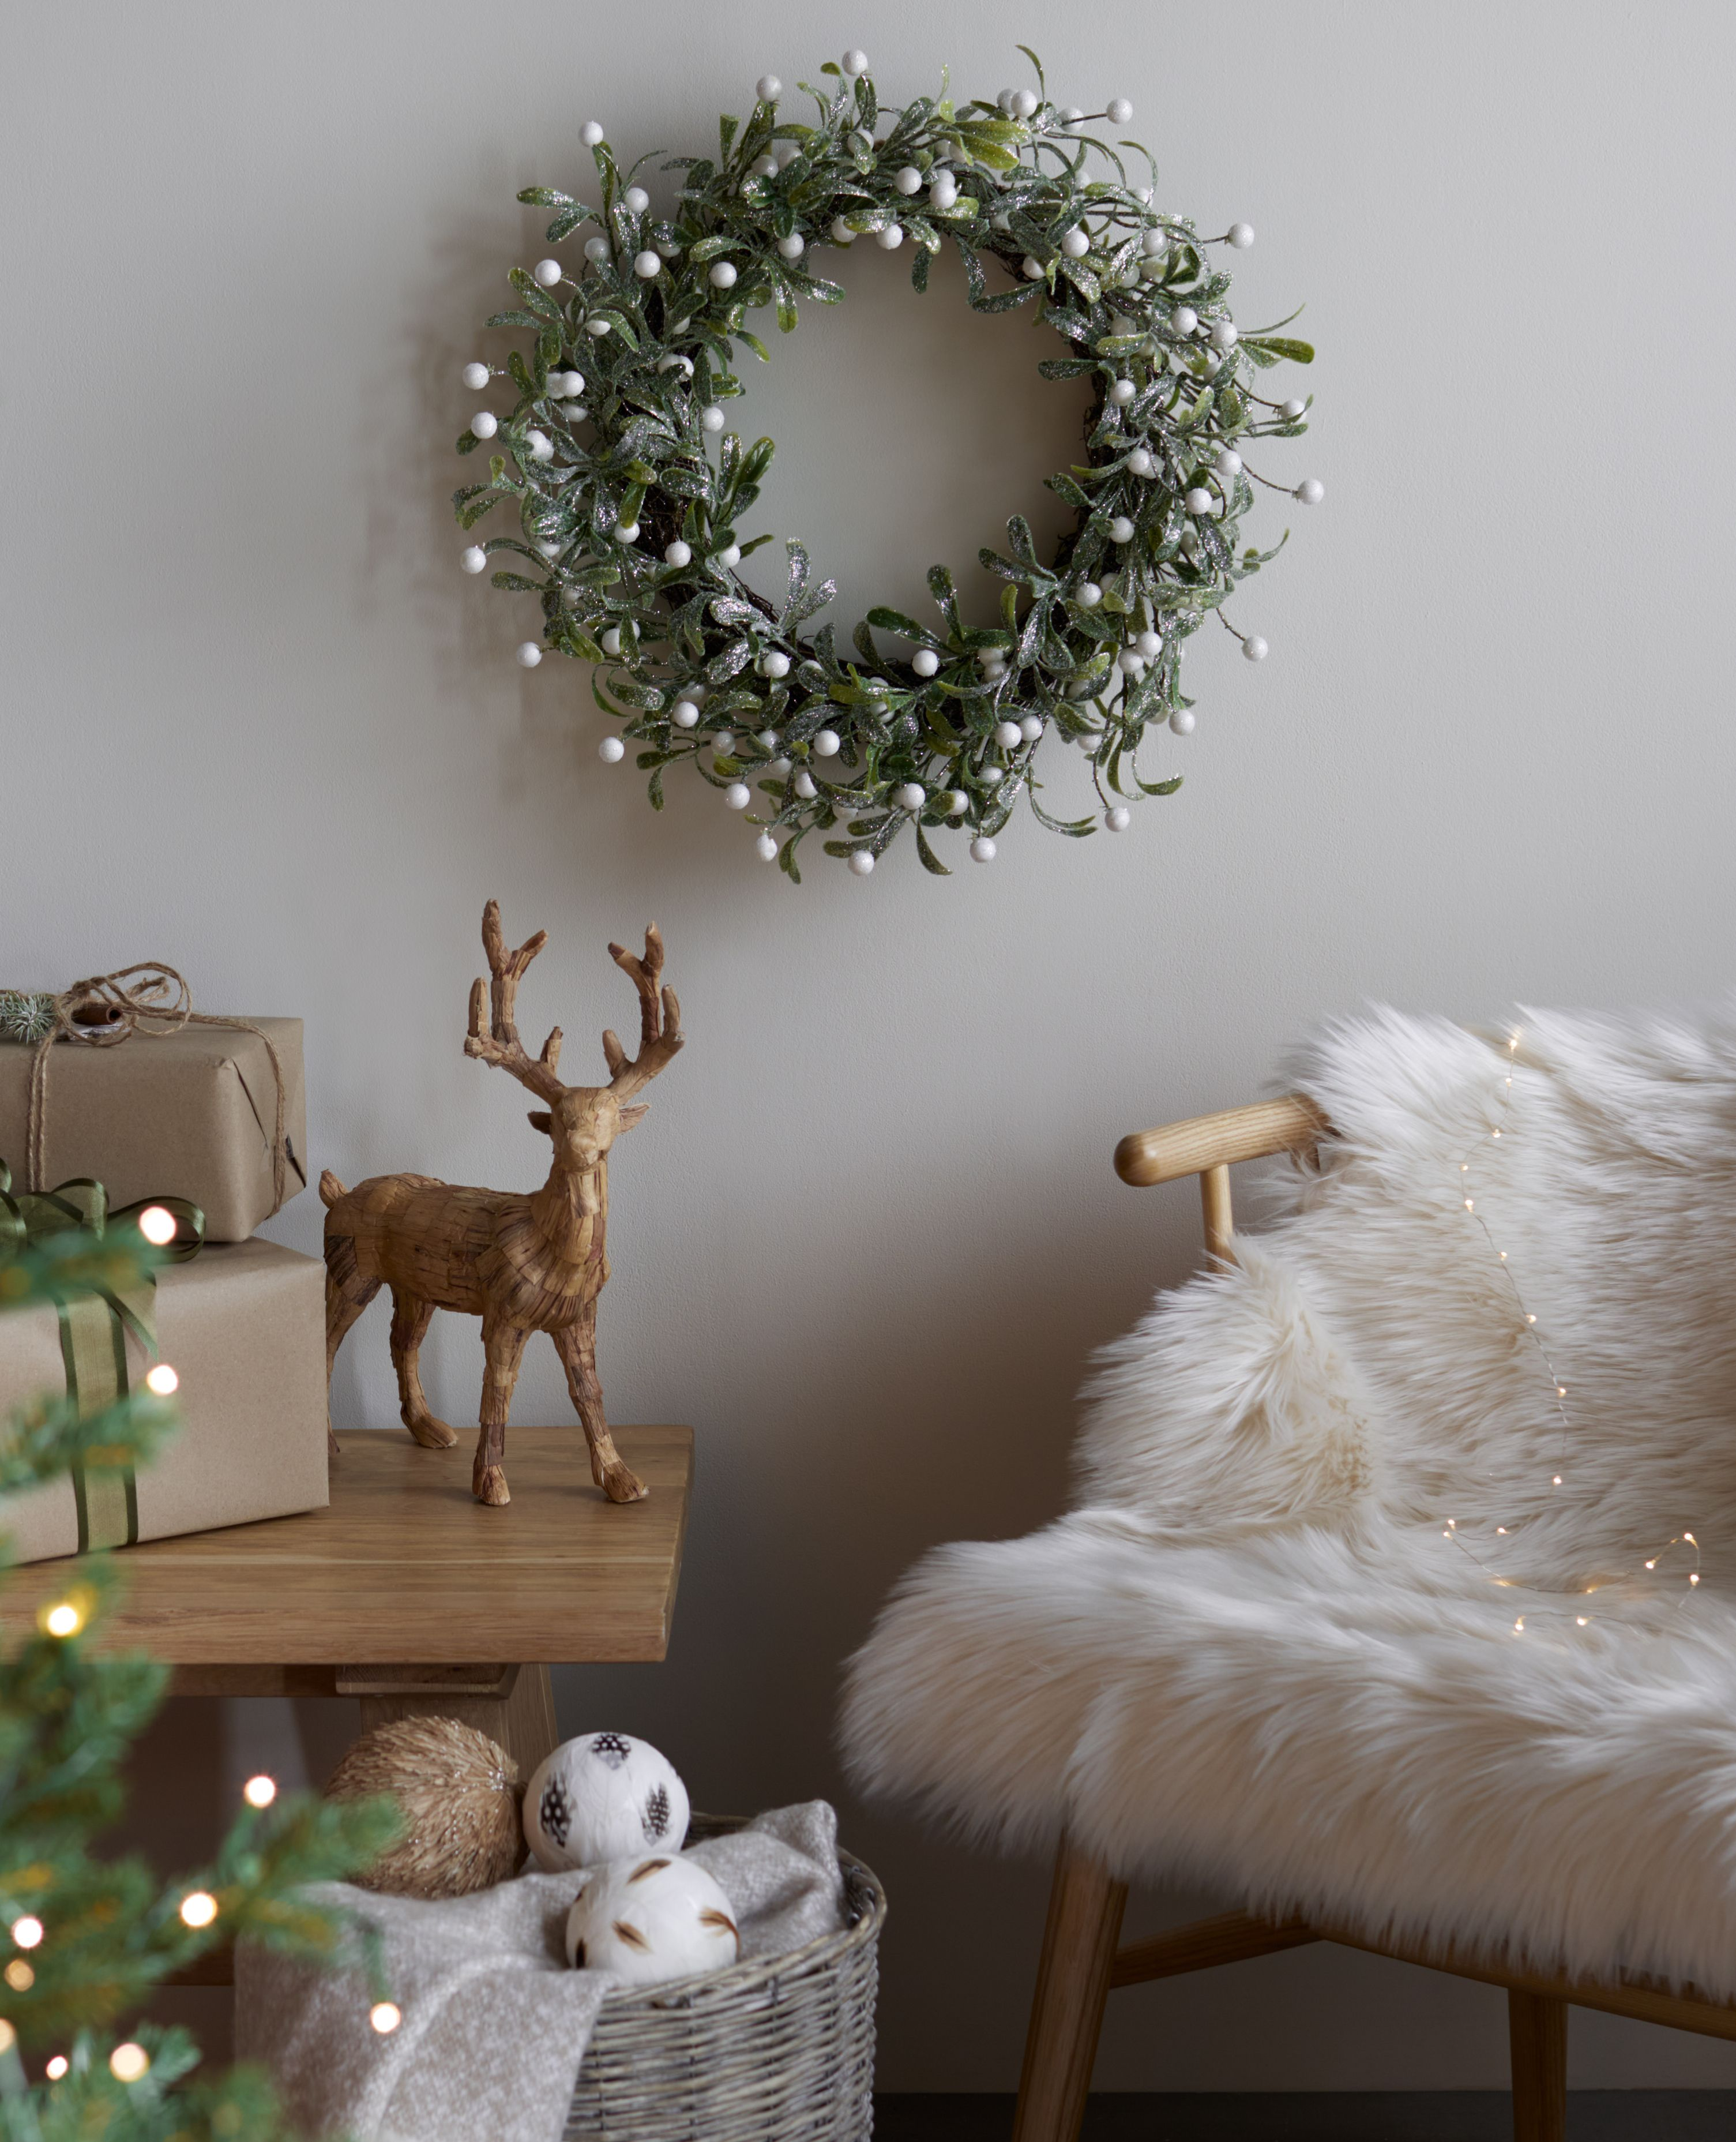 Qvc Uk Christmas 2020 Into The Woods In 2020 Wreaths And Garlands Christmas Decorations Garland